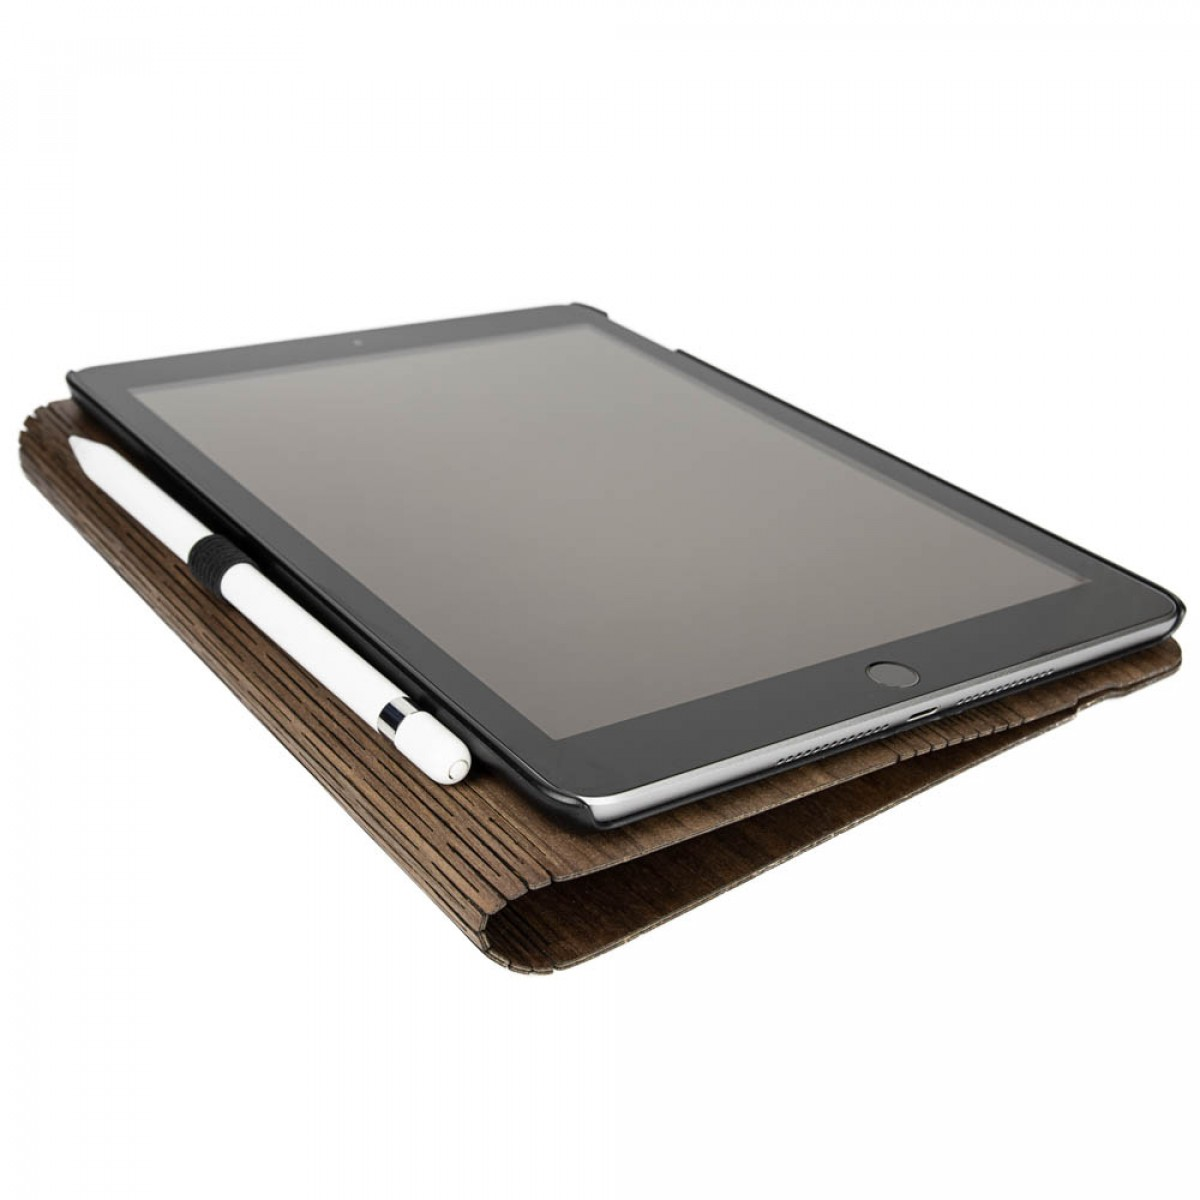 JUNGHOLZ Design WoodCase, Tablet, Walnuss, iPad 5. & 6. Generation